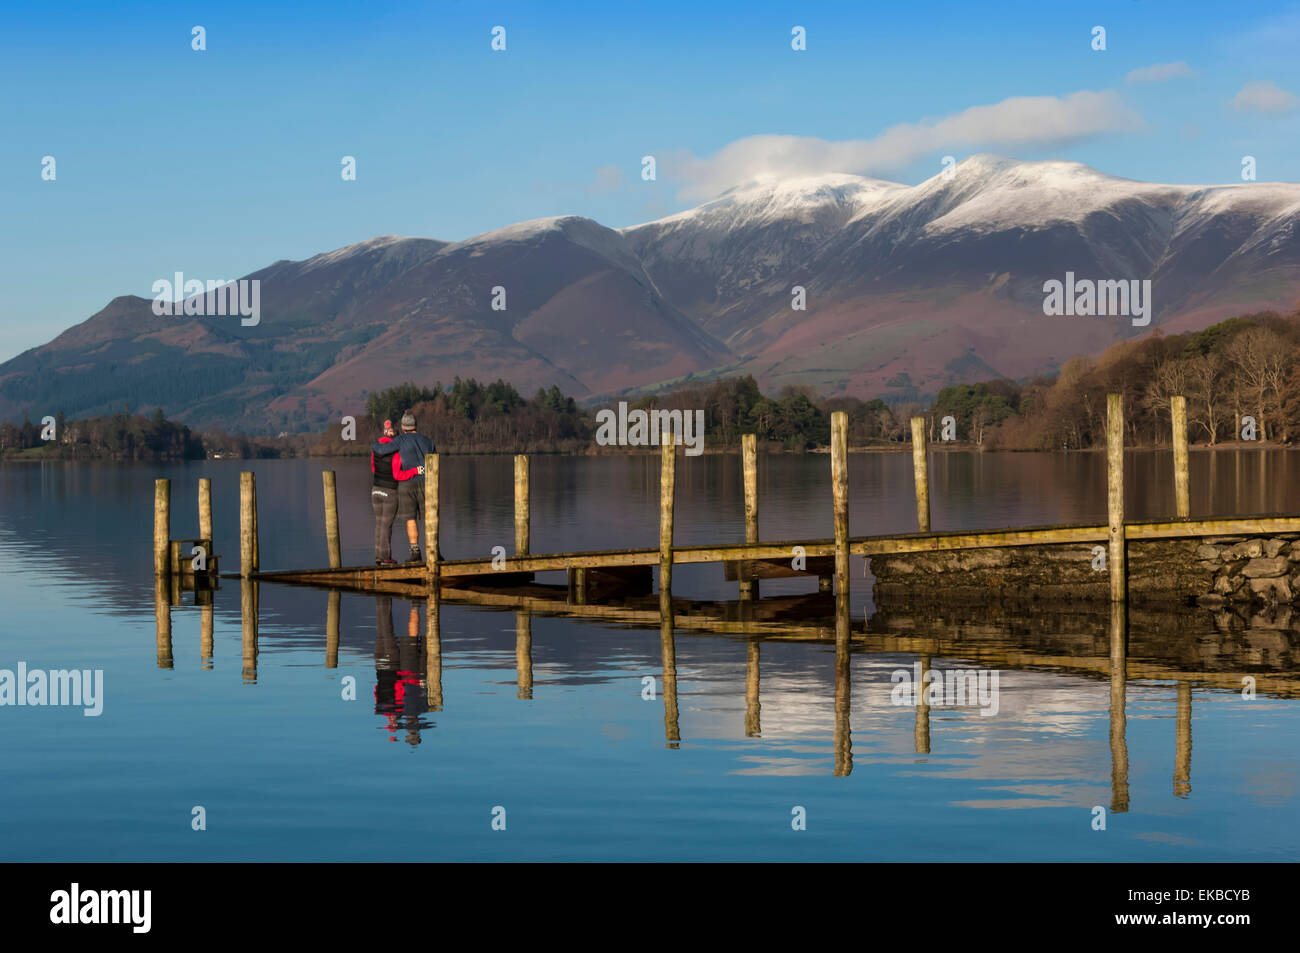 Ashness Boat Landing, Skiddaw Range, Derwentwater, Keswick, Lake District National Park, Cumbria, England, UK - Stock Image